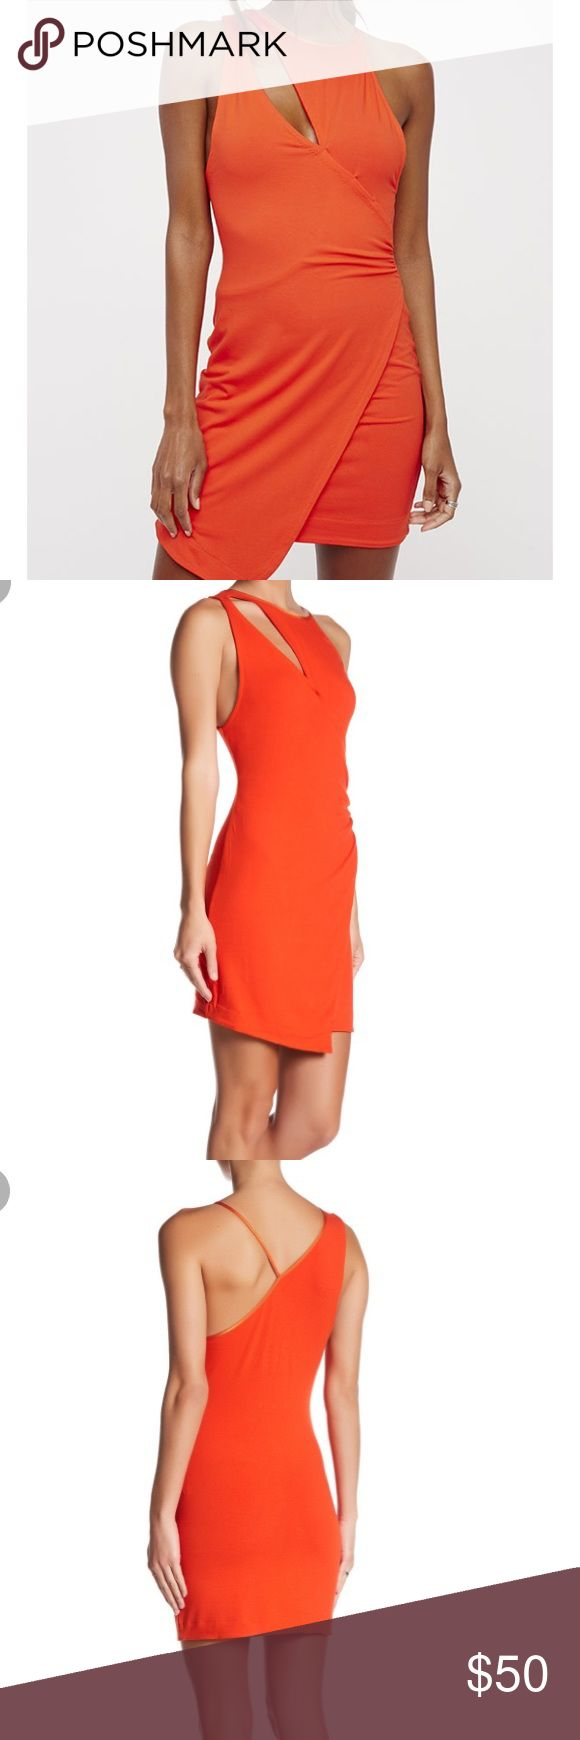 """[Free People] Toast To That Orange Mini Dress Details  - Scoop neck  - Sleeveless  - Spaghetti strap on left side  - Collar cutout  - Metallic trim  - Side shirring  - Wrap style knit construction  - Approx. 36"""" length  - Imported  Fiber Content  87% rayon, 13% spandex Free People Dresses Mini"""